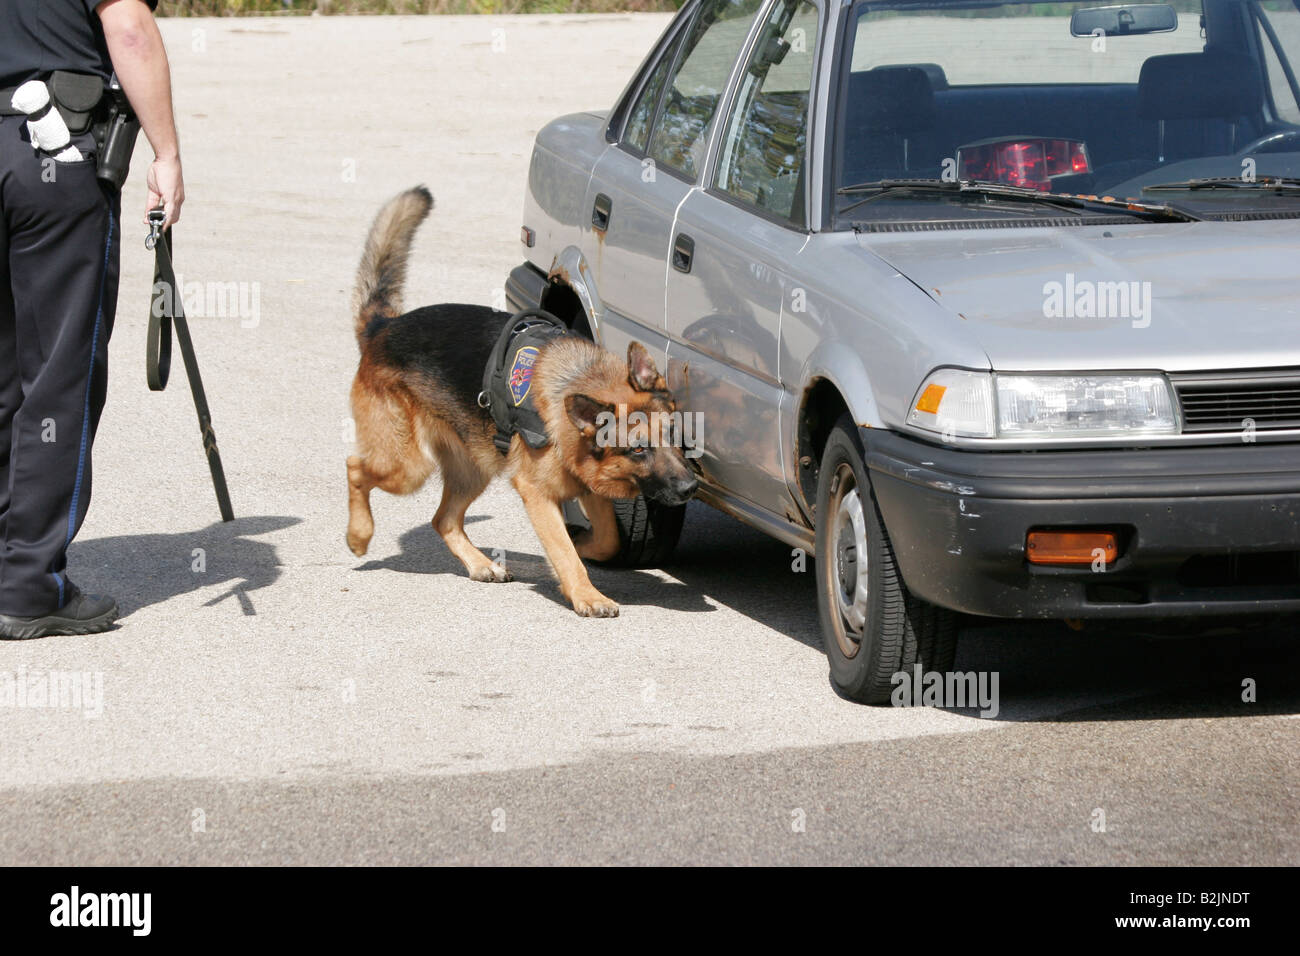 A police dog searching for drugs on an old car - Stock Image